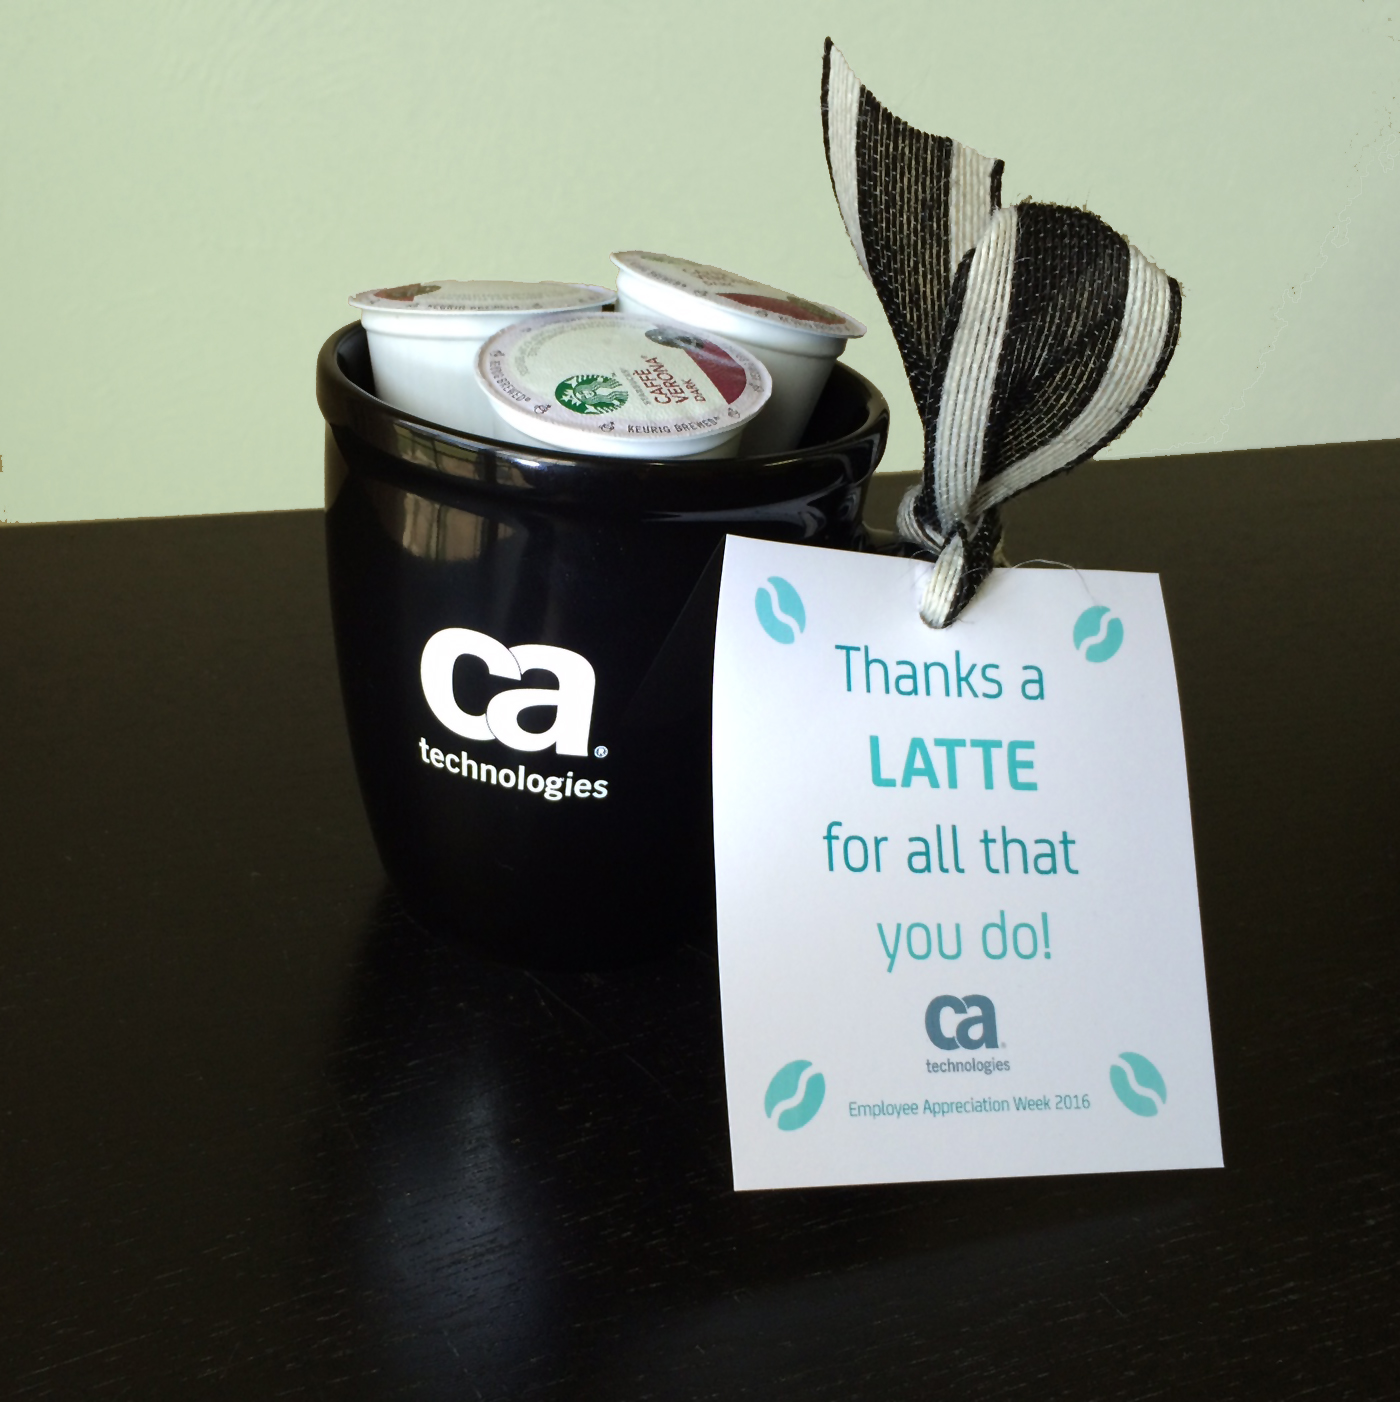 Latte how to 6 easy gift ideas for employee appreciation week